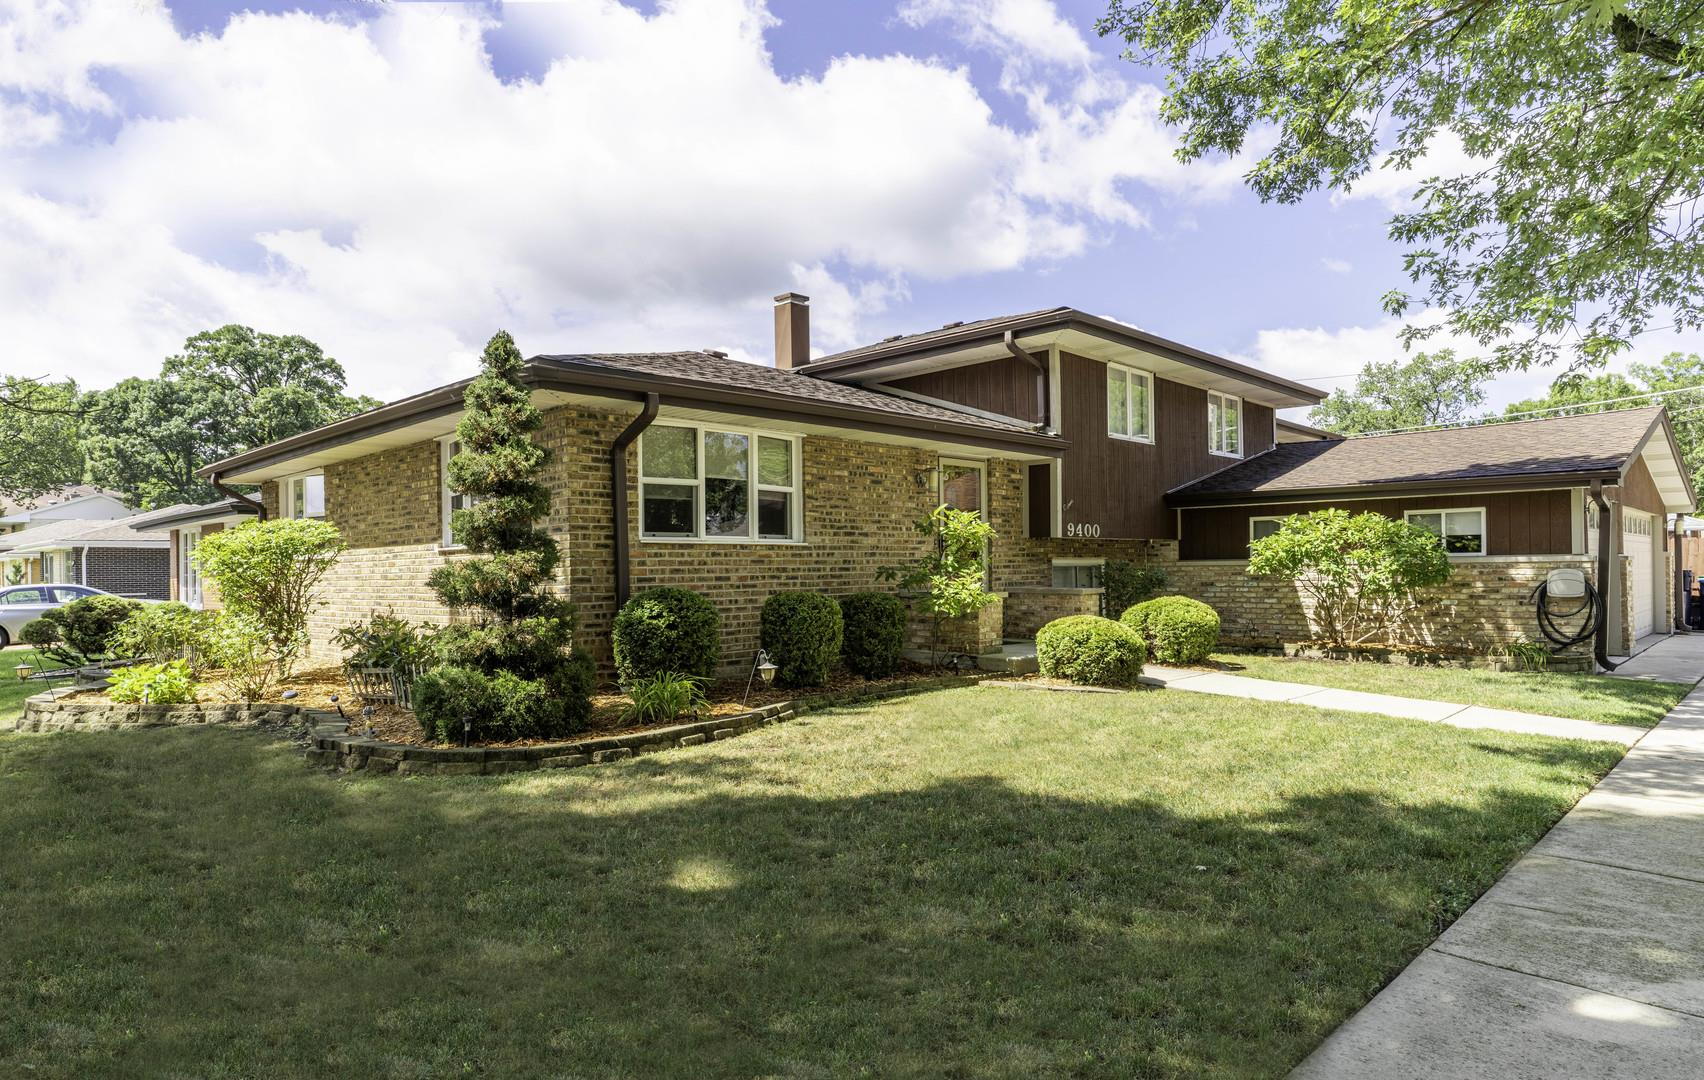 9400 S 82nd Avenue, Hickory Hills, IL 60457 - #: 10778581